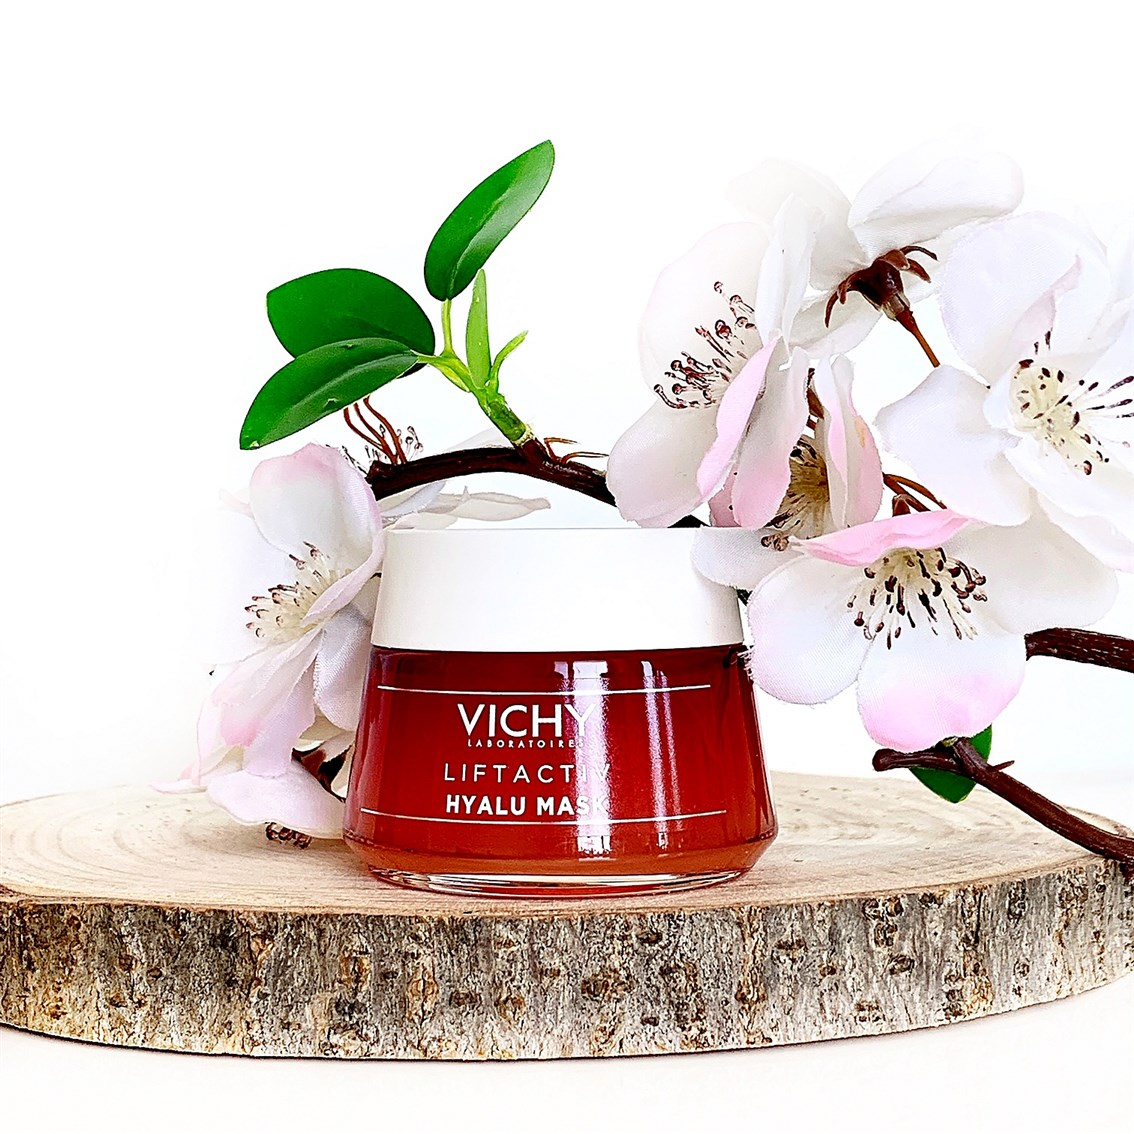 Vichy Liftactiv Specialist Hyalu Mask